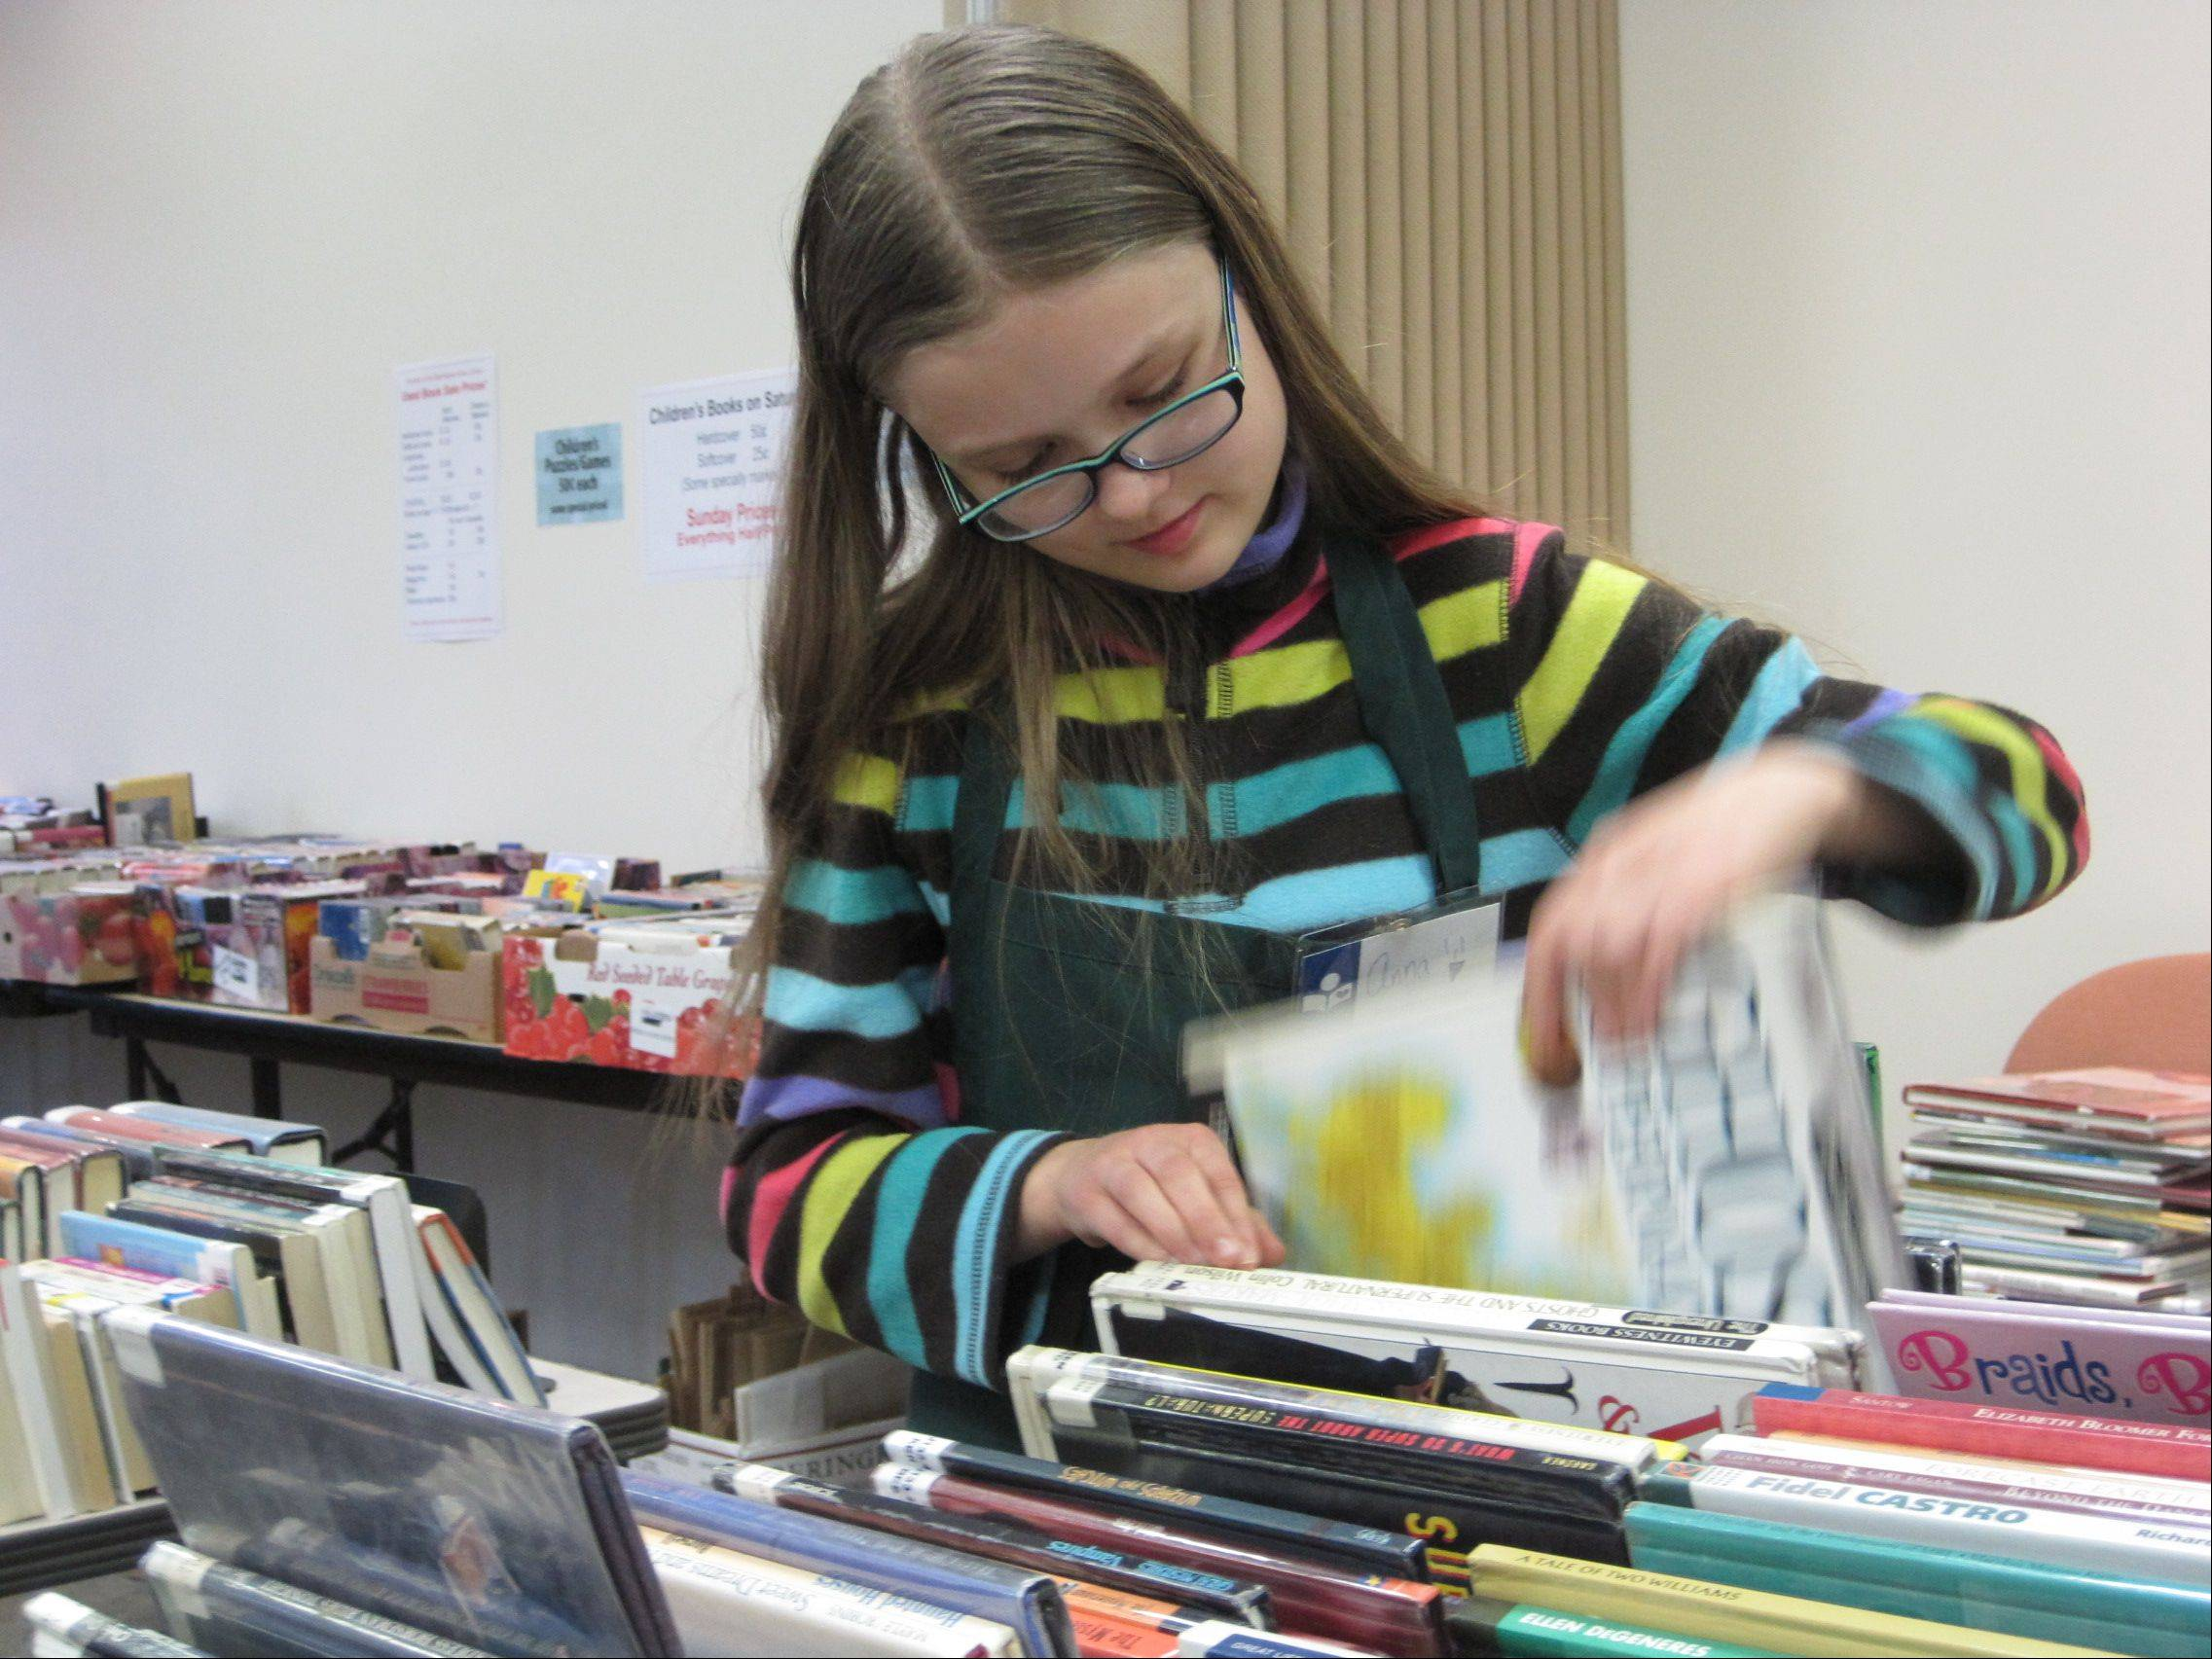 Anna Walker, 13, looks through children's books Saturday at the Friends of the Barrington Area Library book sale.